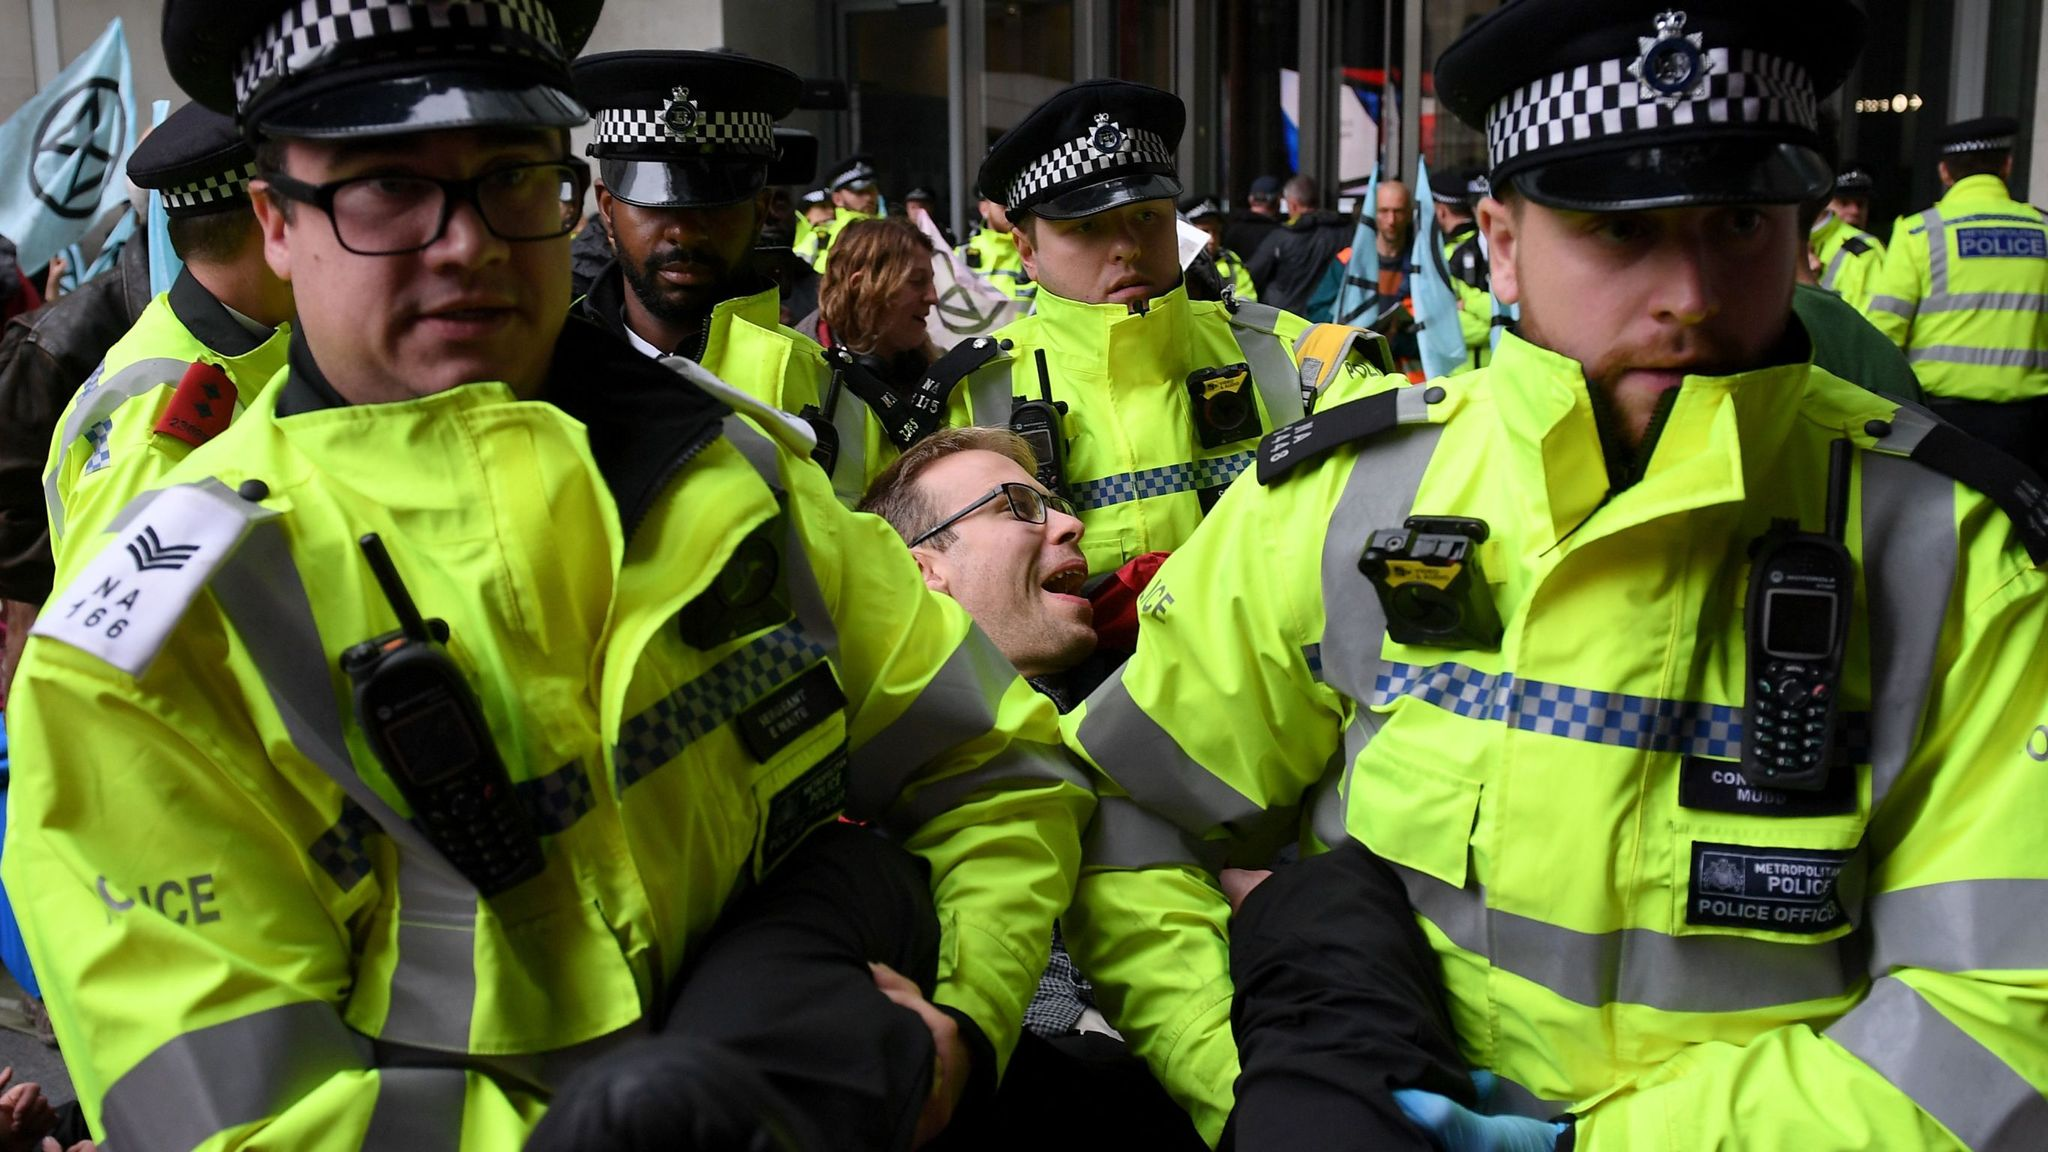 Met police chief says force 'stretched' by Extinction Rebellion climate protests